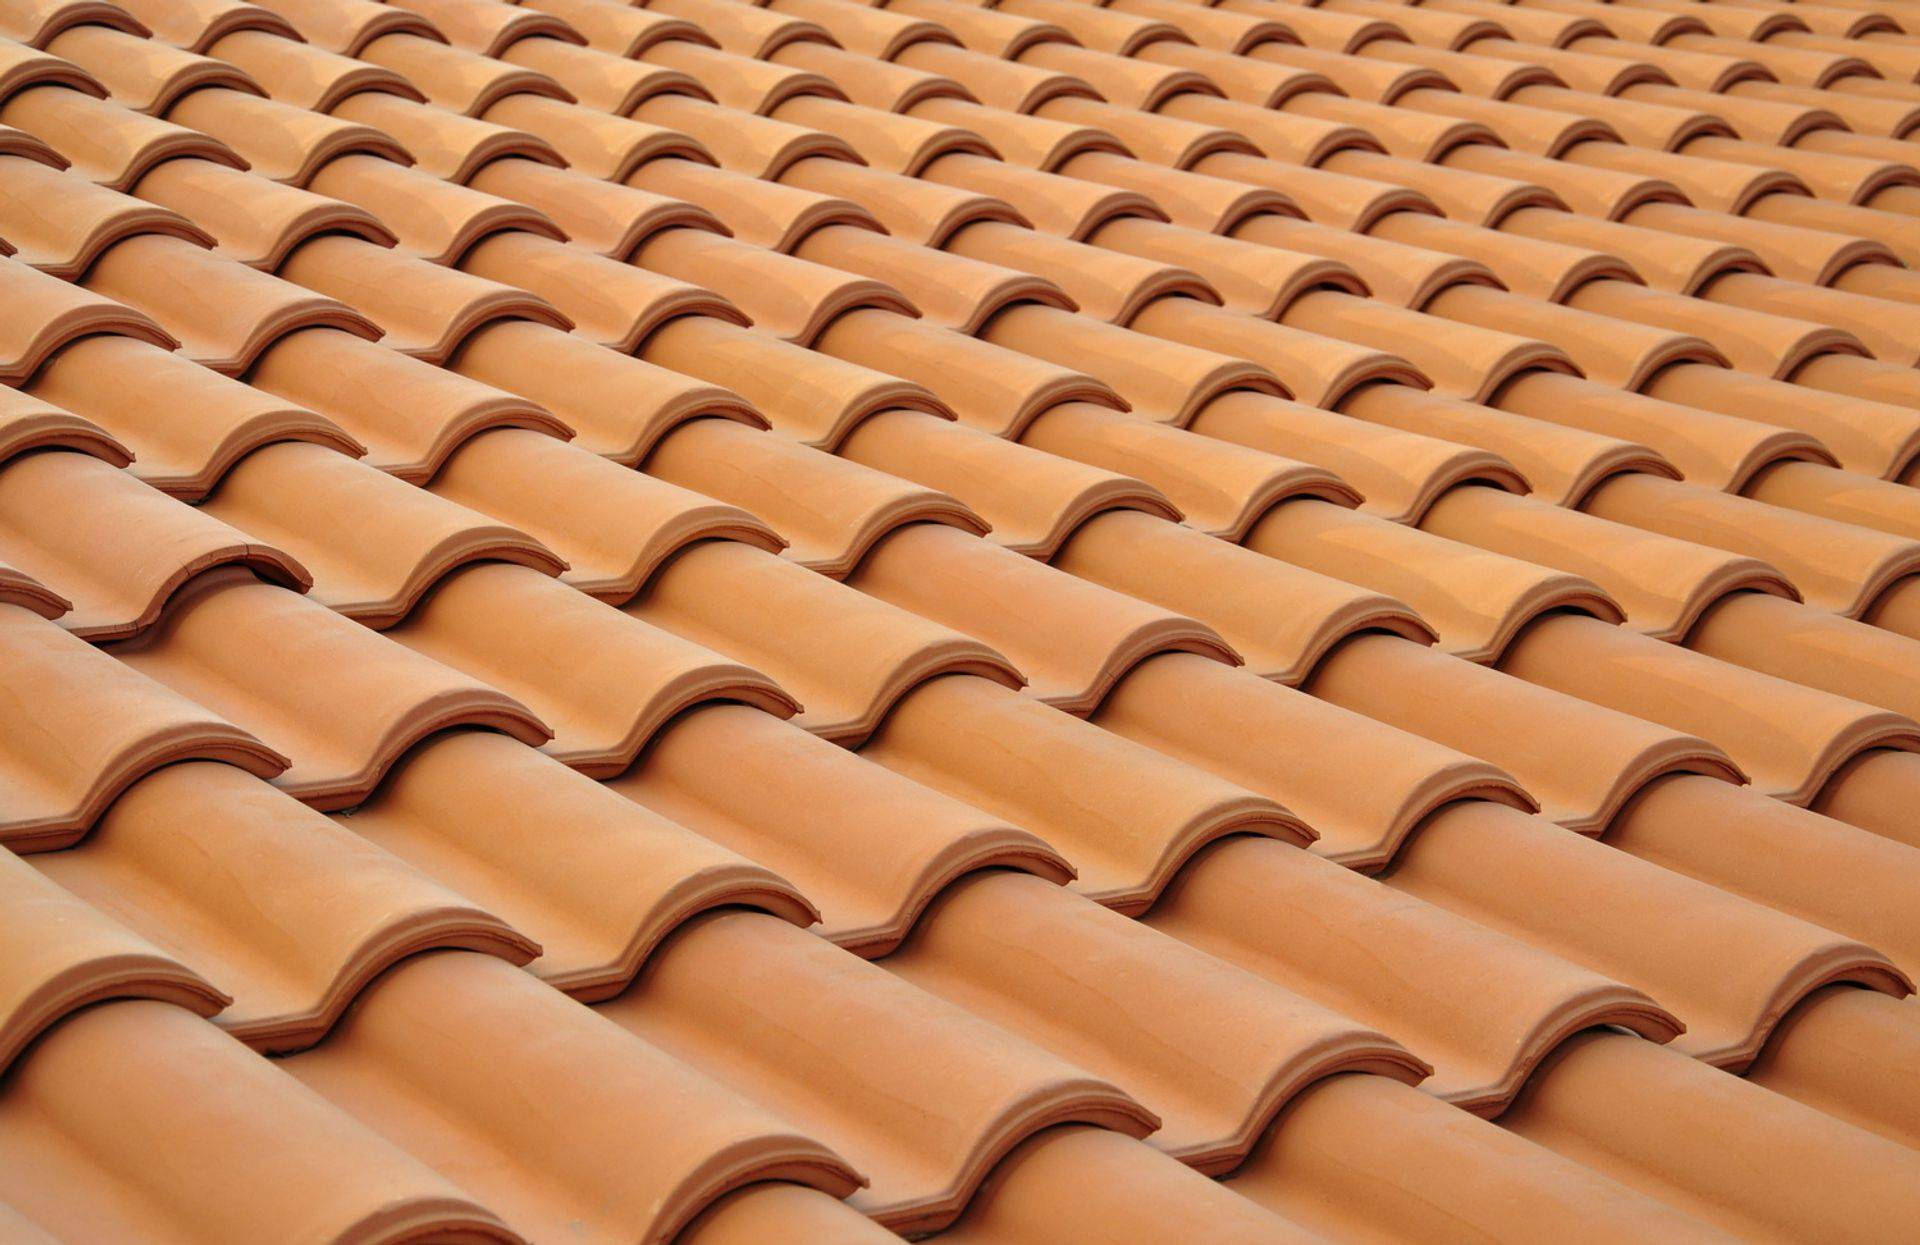 A thick roof tile that is beautiful and sturdy